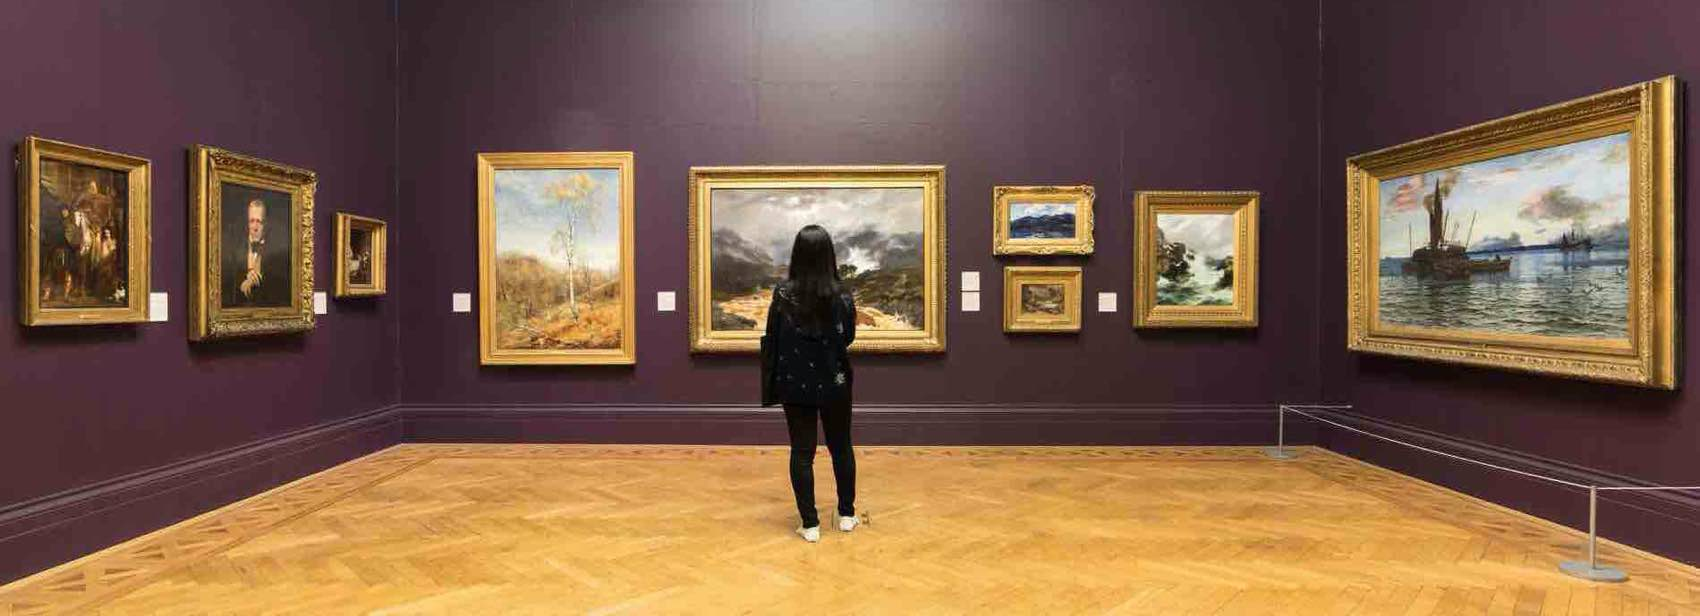 Discover artwork of some of the finest British artists at Manchester Art Gallery